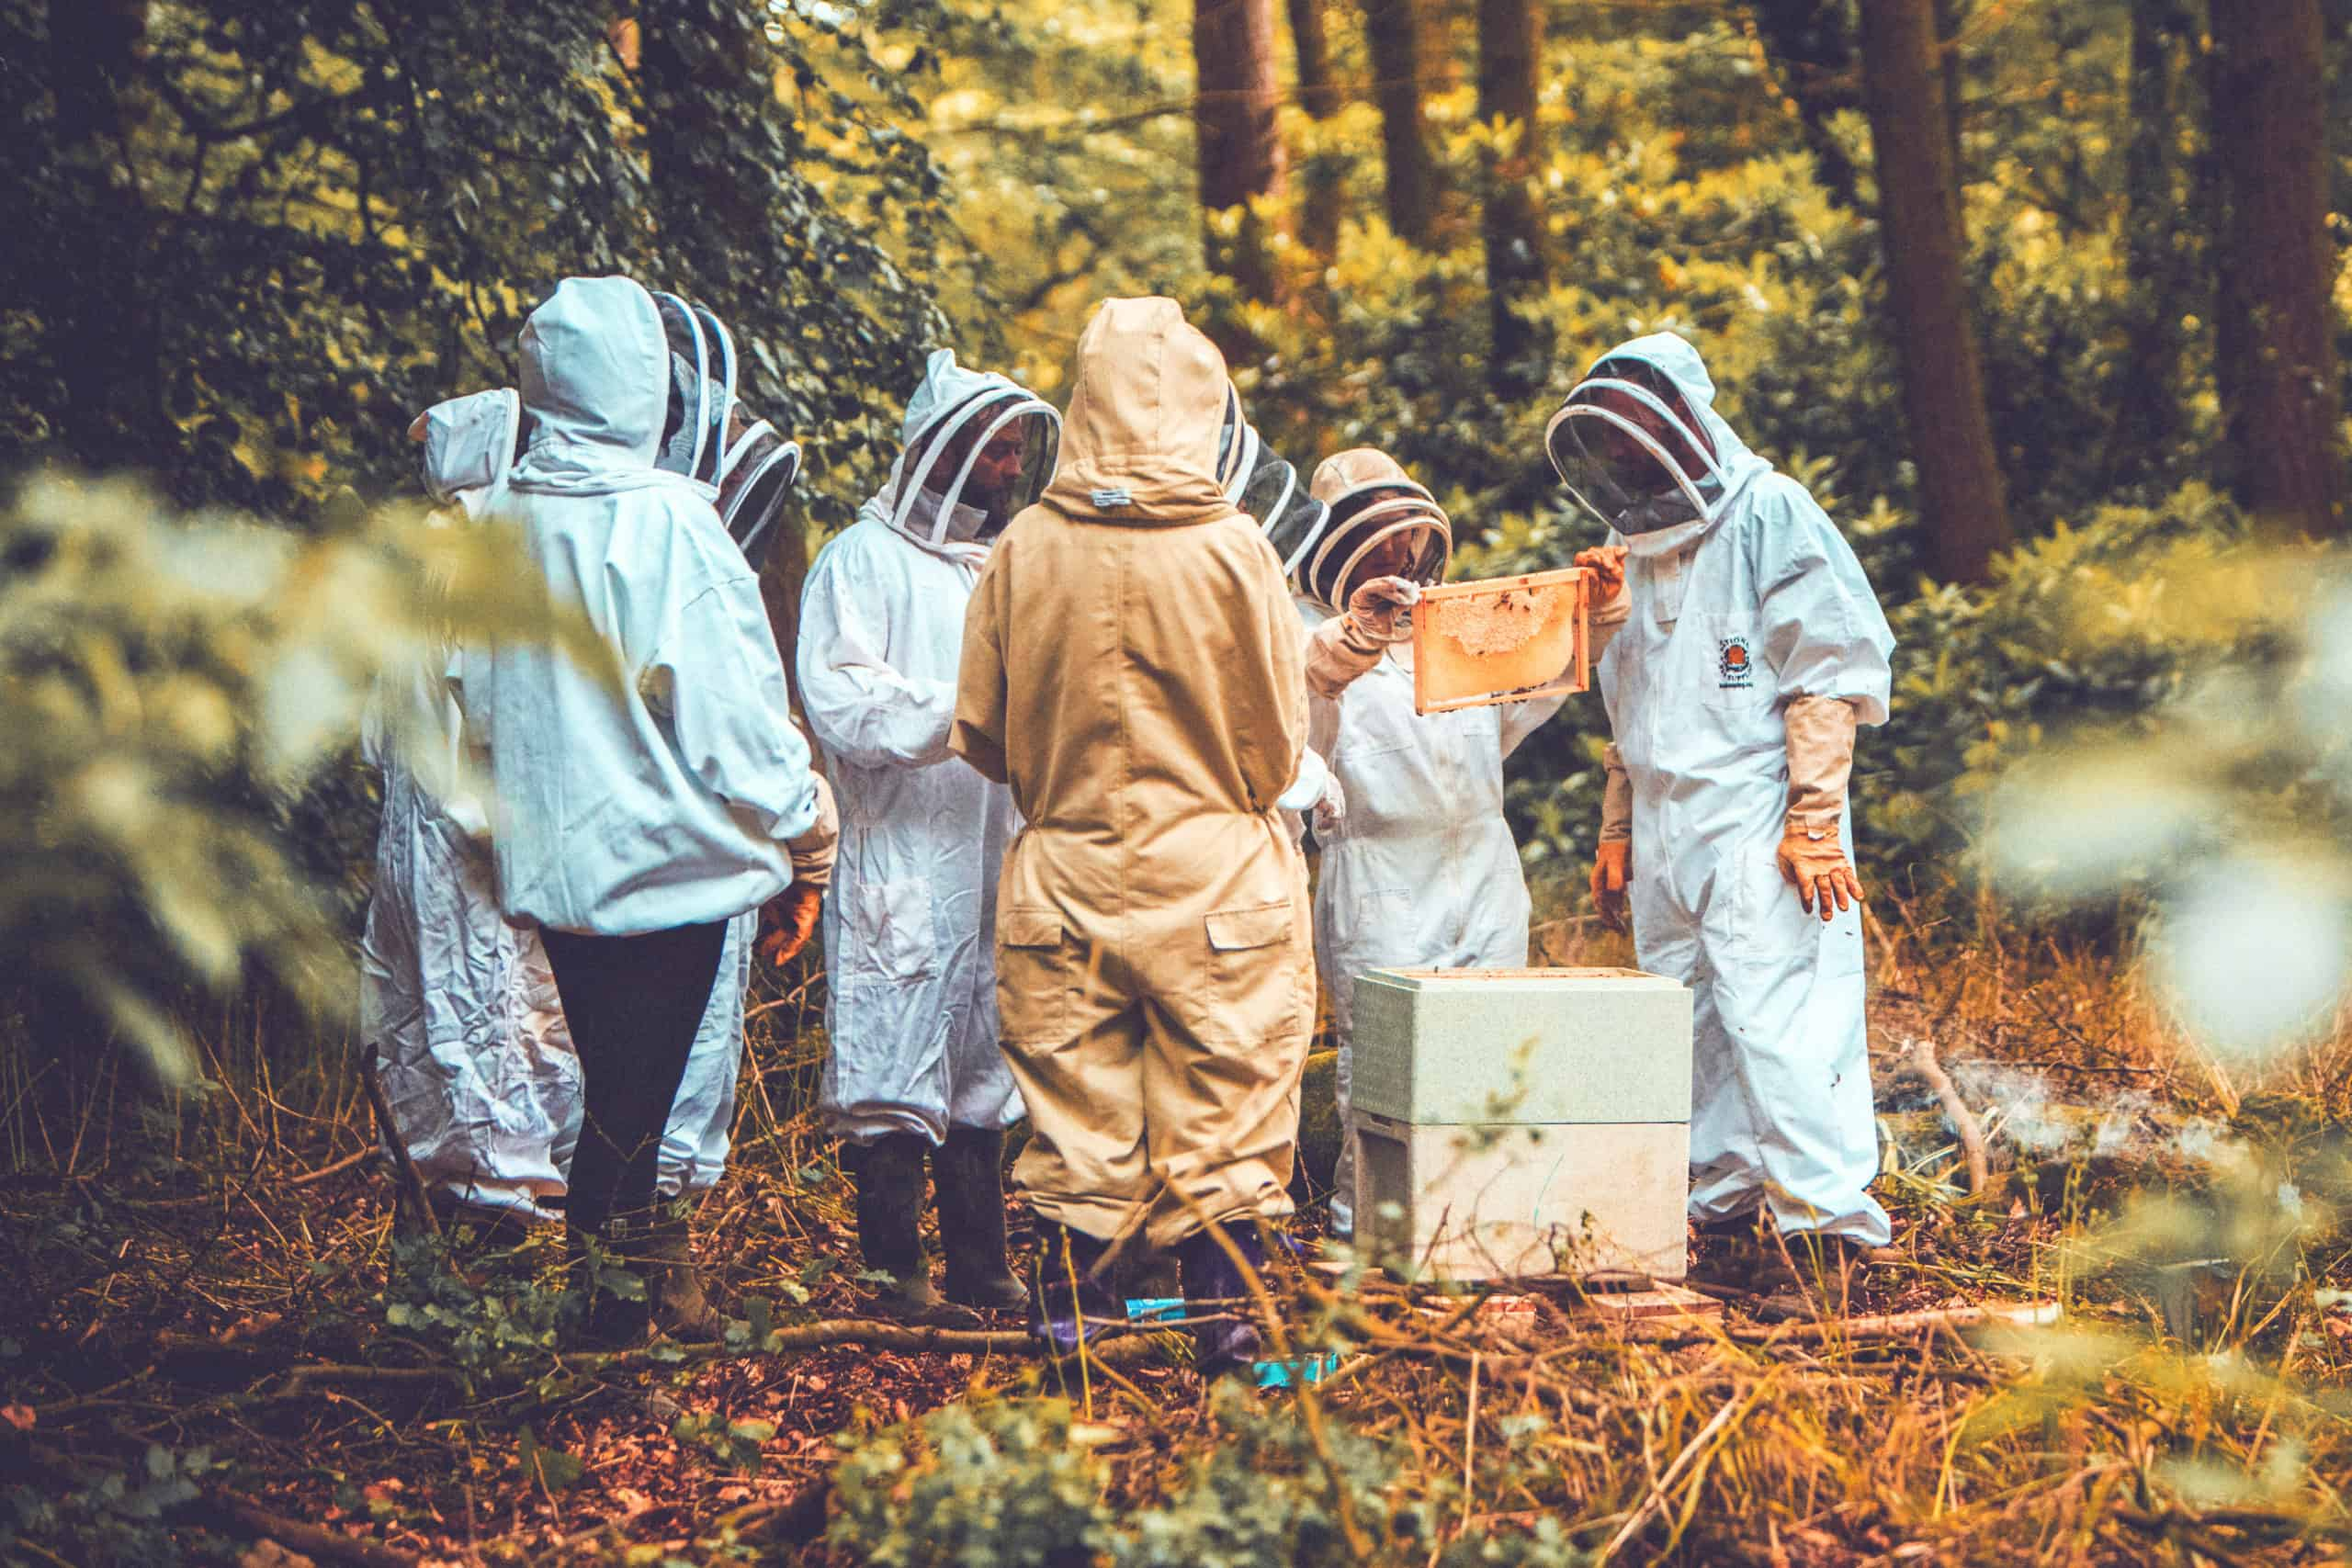 A group in a beekeeping session at Camp Wildfire. A summer weekend break in a forest near London and Kent. An outdoor woodland retreat featuring adventure activities, live music, DJs, parties and camping. Half summer adventure activity camp, half music festival, for adults only.